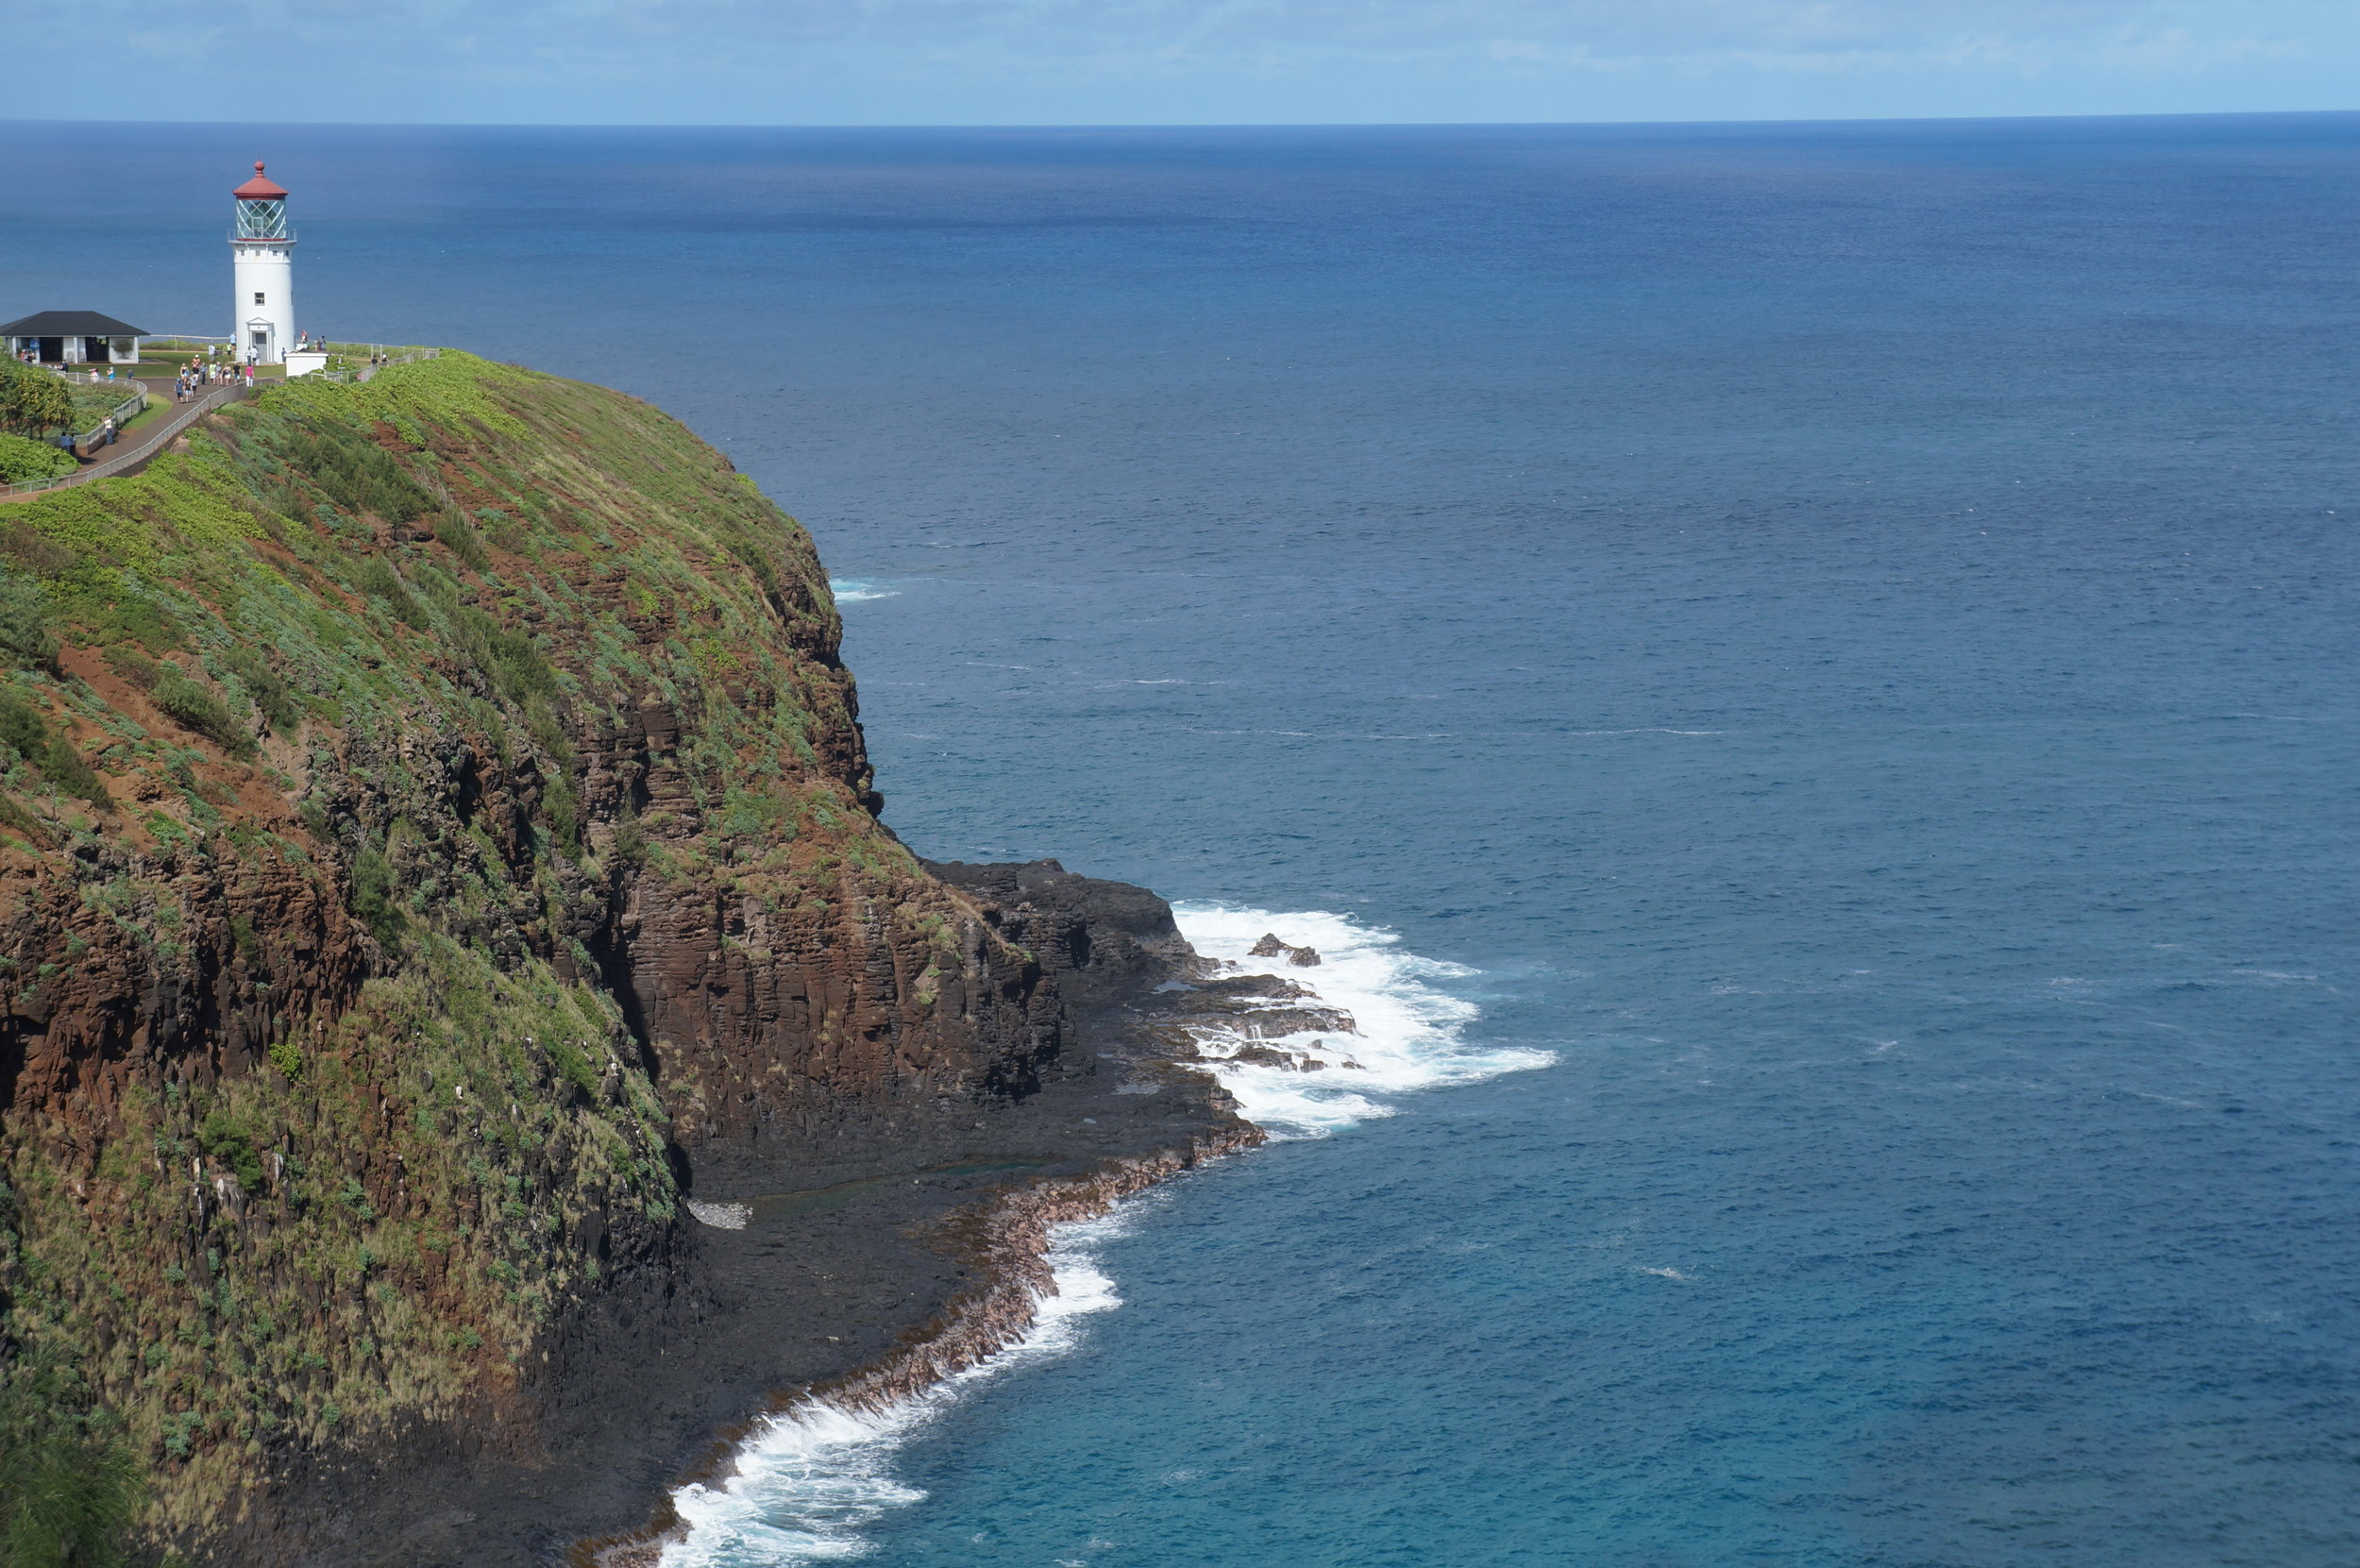 Kilauea Lighthouse near Princeville and on the way to Honalei Bay.